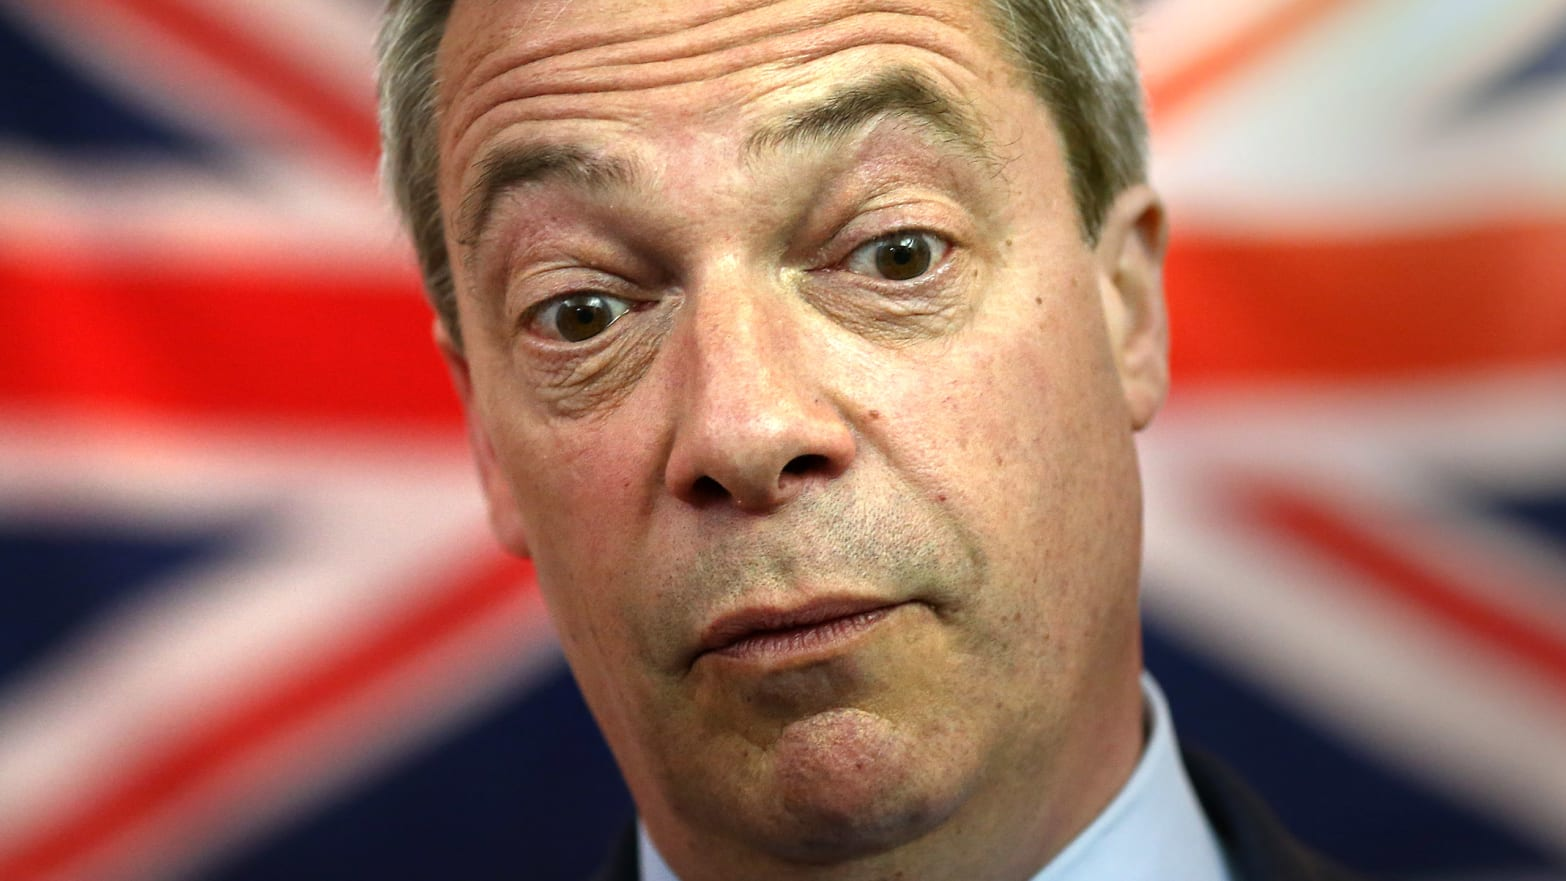 Mr Brexit Nigel Farage relinquishes role as Europes